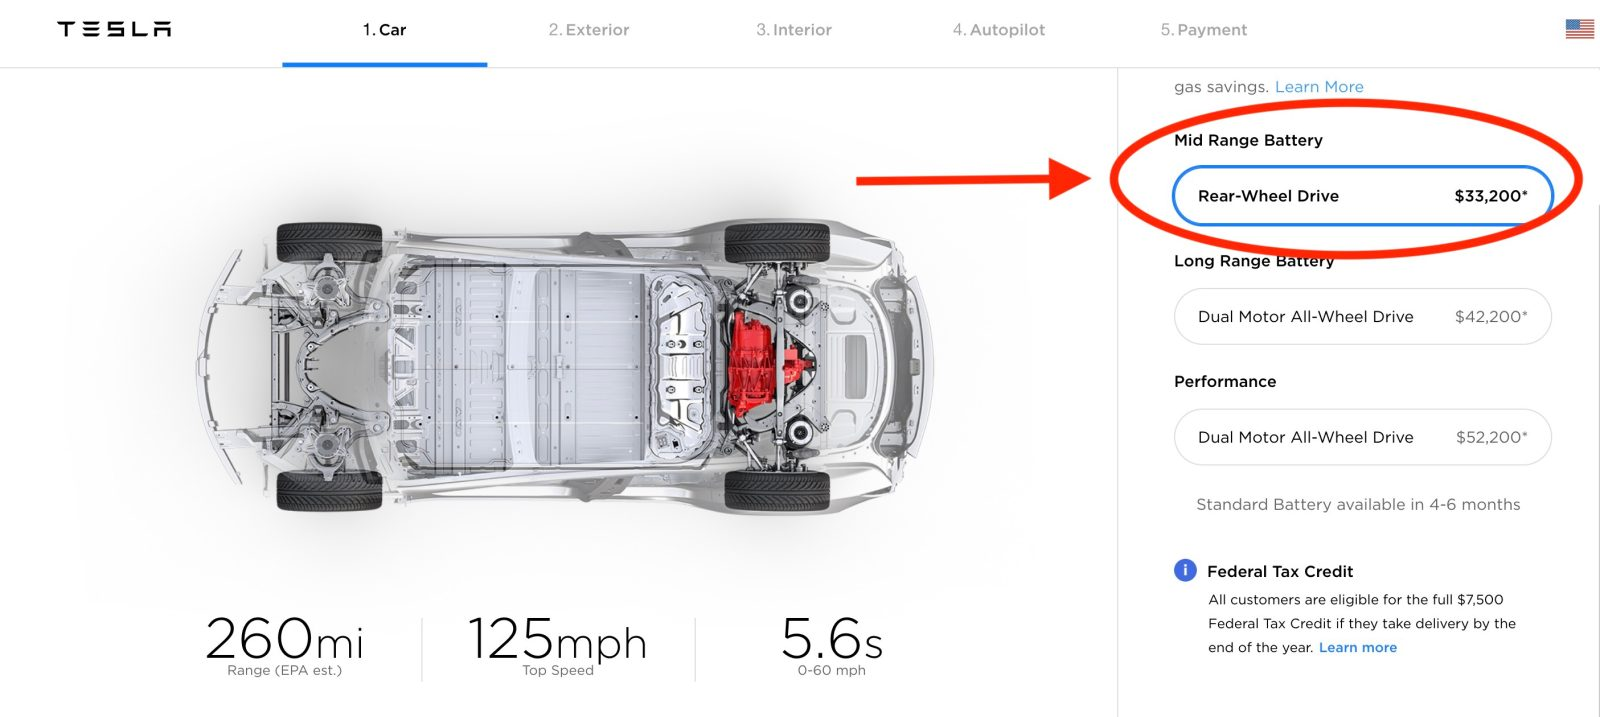 Tesla launches new Model 3 with 'mid-range' battery for